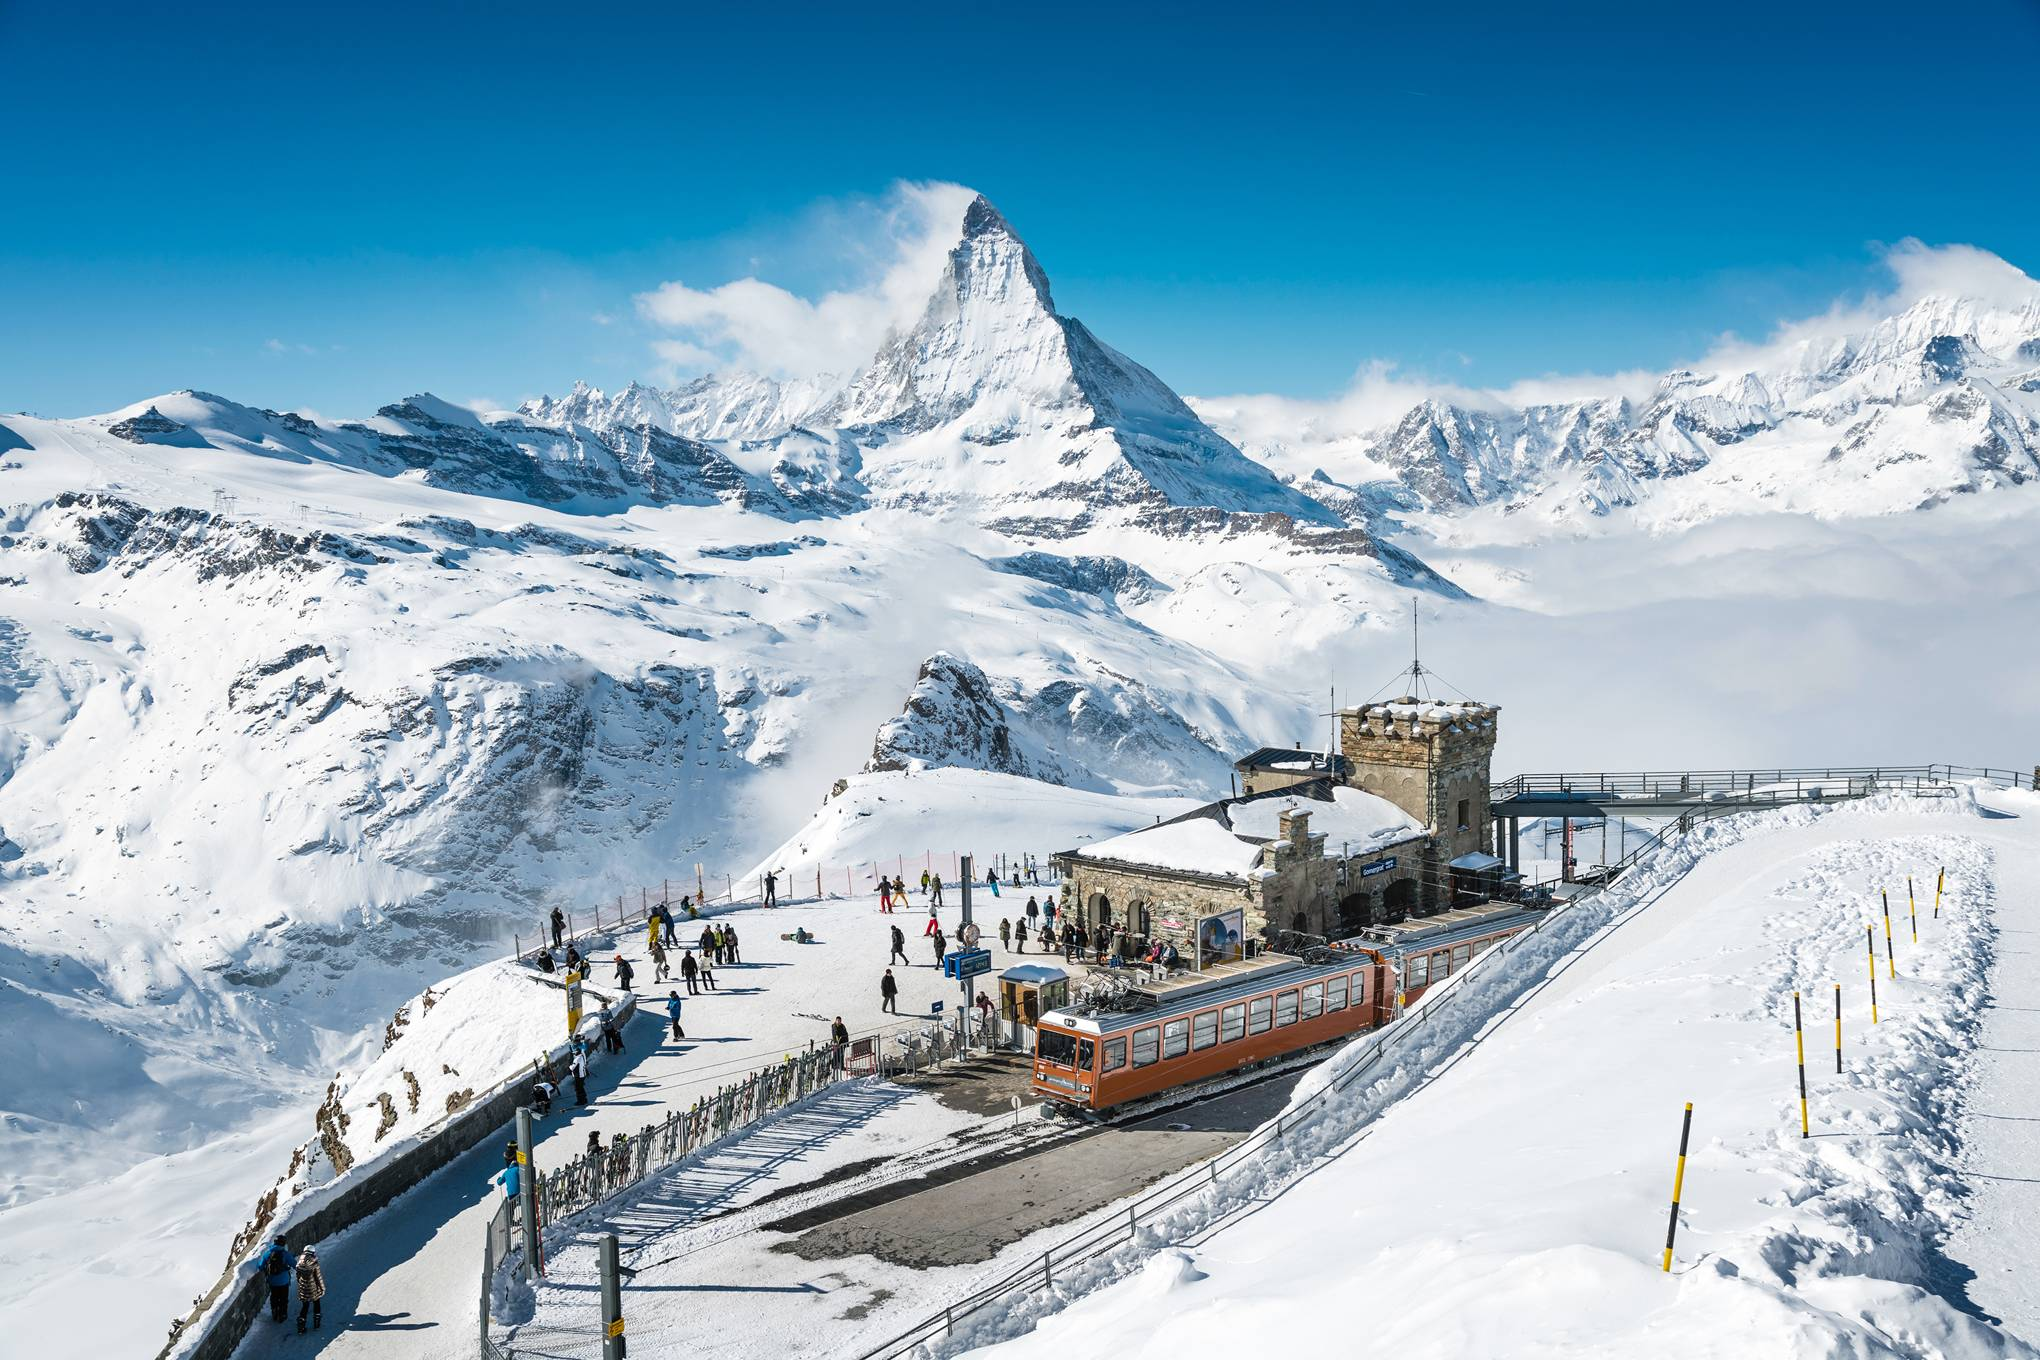 The 10 best skiing breaks by train to take in 2020